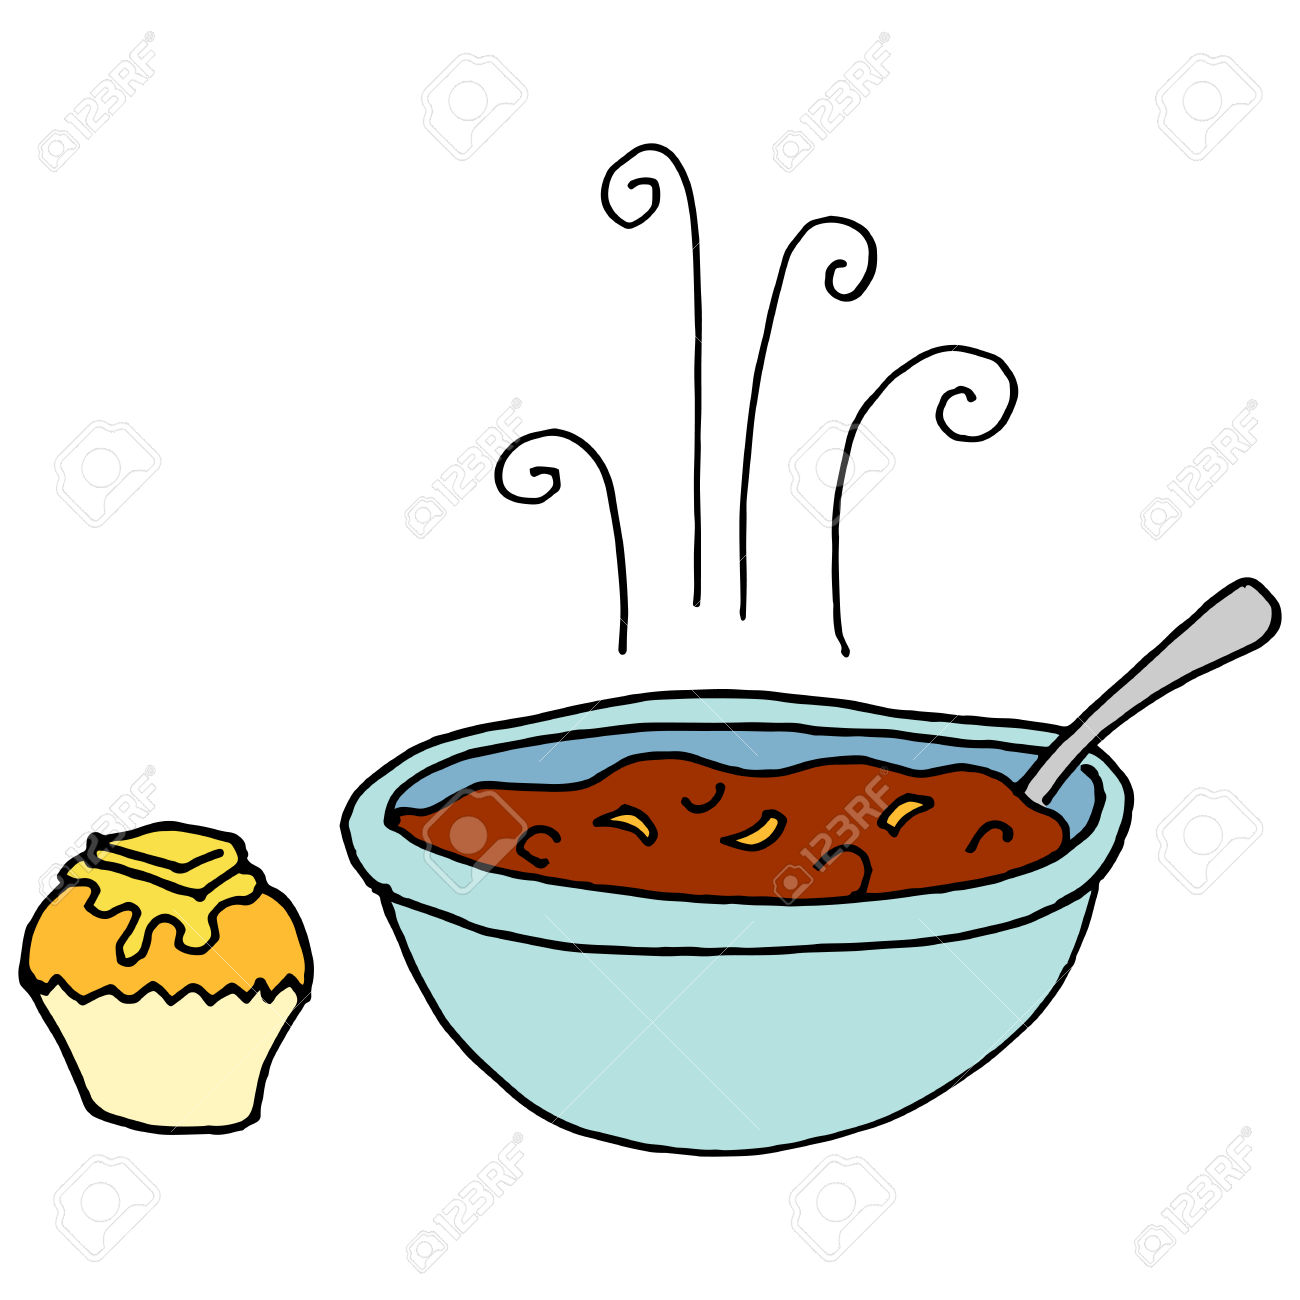 An Image Of A Bowl Of Chili And Cornbread Muffin. Royalty Free.